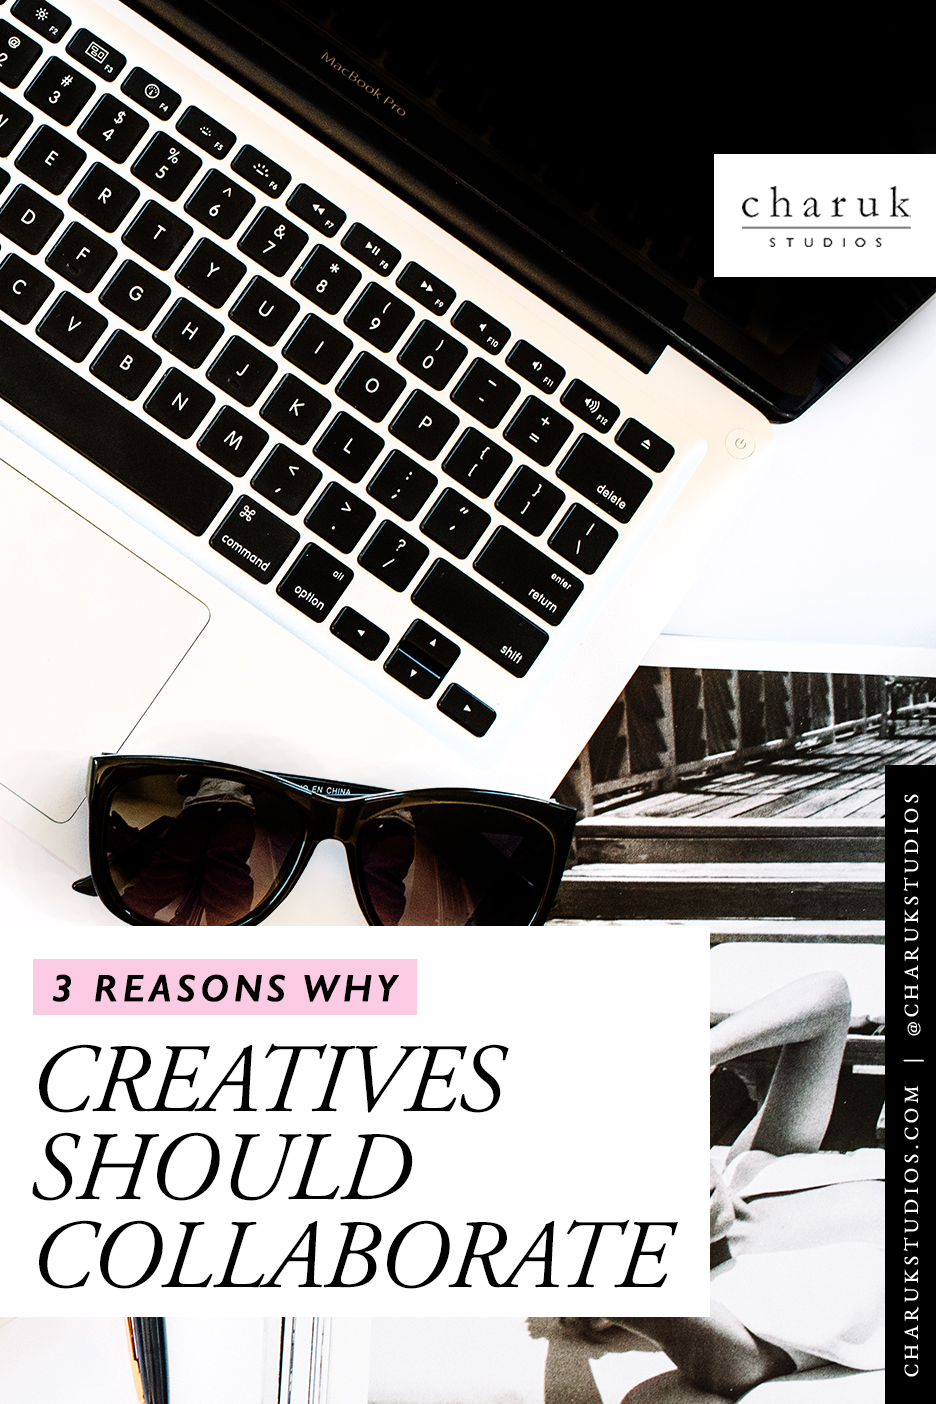 3 Reasons why creatives should collaborate by Charuk Studios